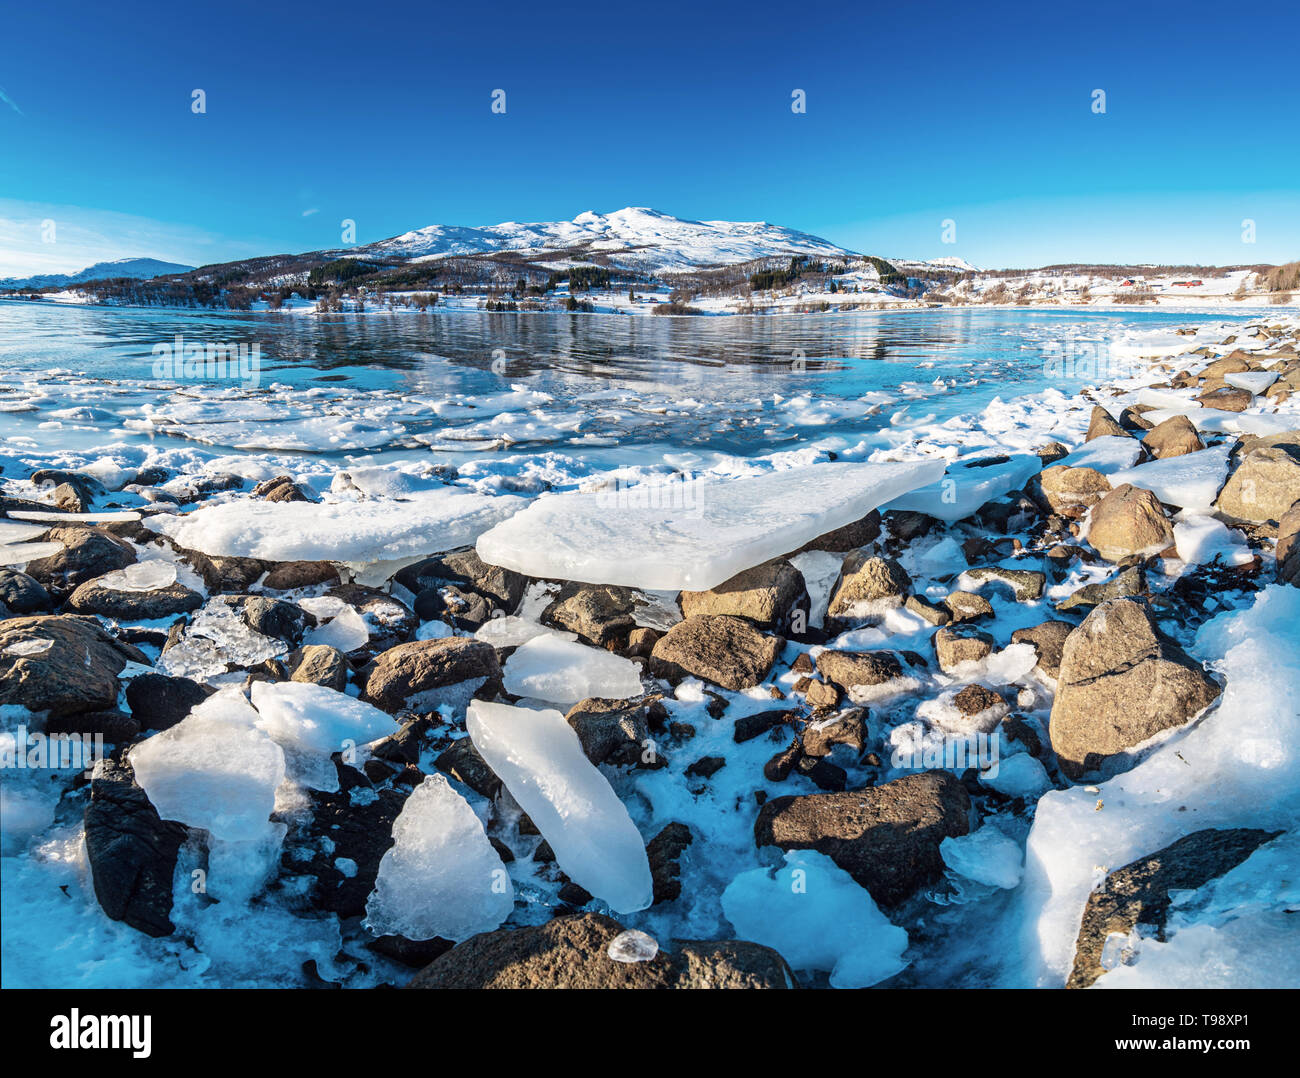 Wide angle view of beautiful winter lake with ice on the coast at Lofoten Islands in Northern Norway - Stock Image